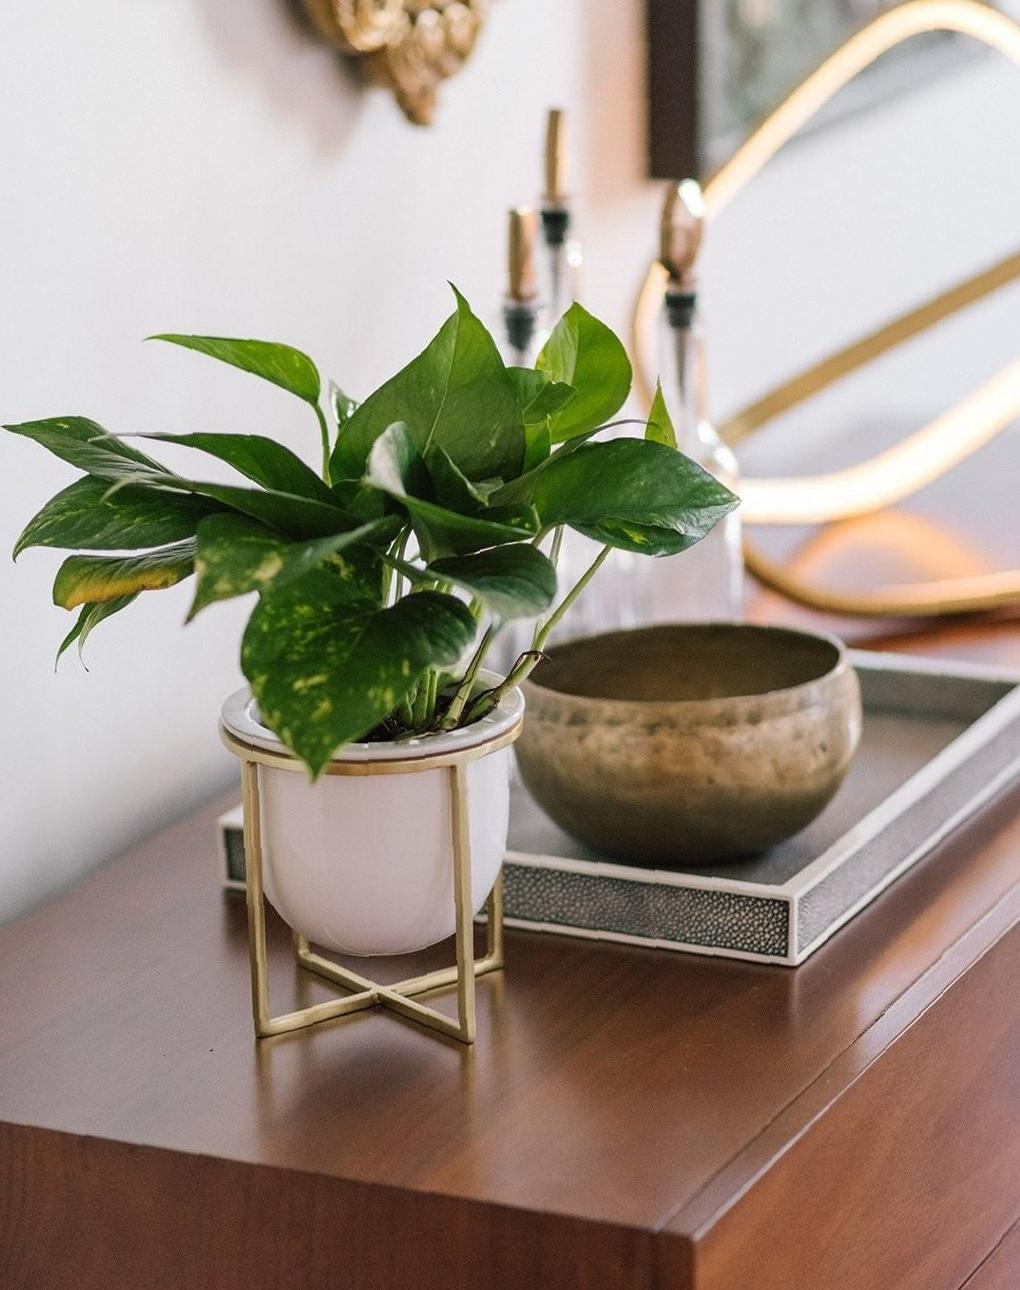 Gorgeous Indoor Plants Idea Images for Decoration - Page 2 of 8 - Guide19 Blog